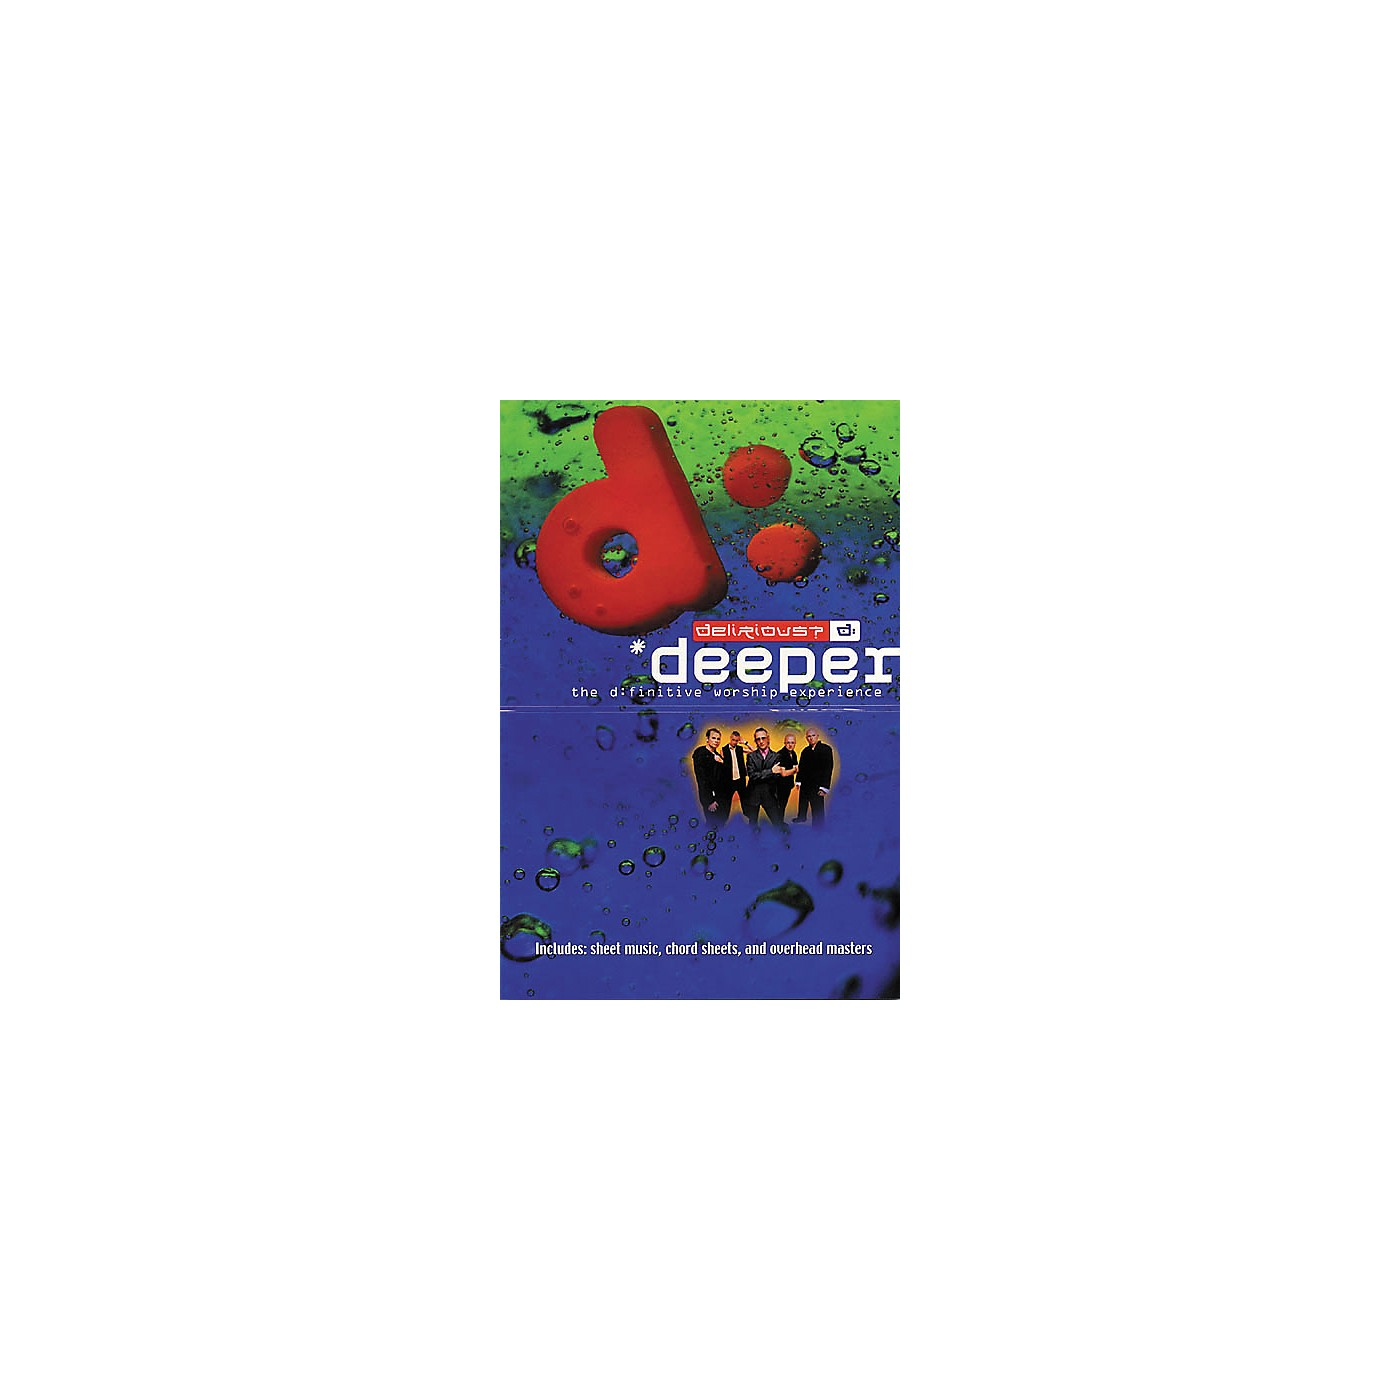 Worship Together Delirious? - Deeper Book thumbnail